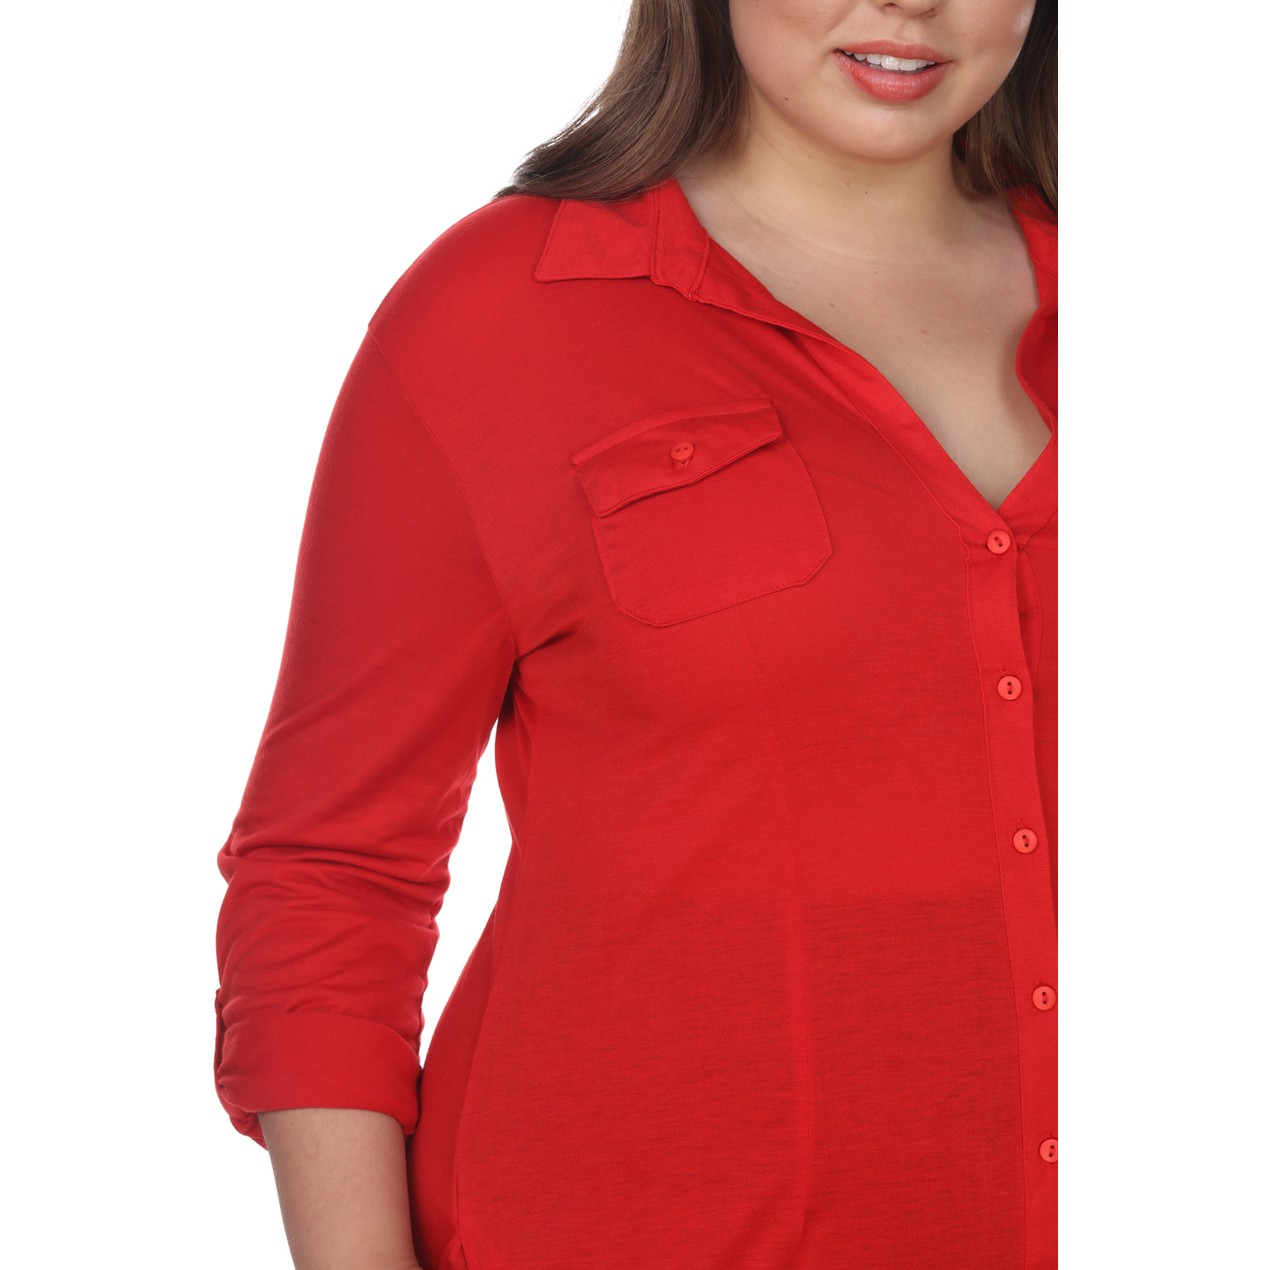 Lakota Stretchy Button-Down Tunic Top - 5 Colors - Extended